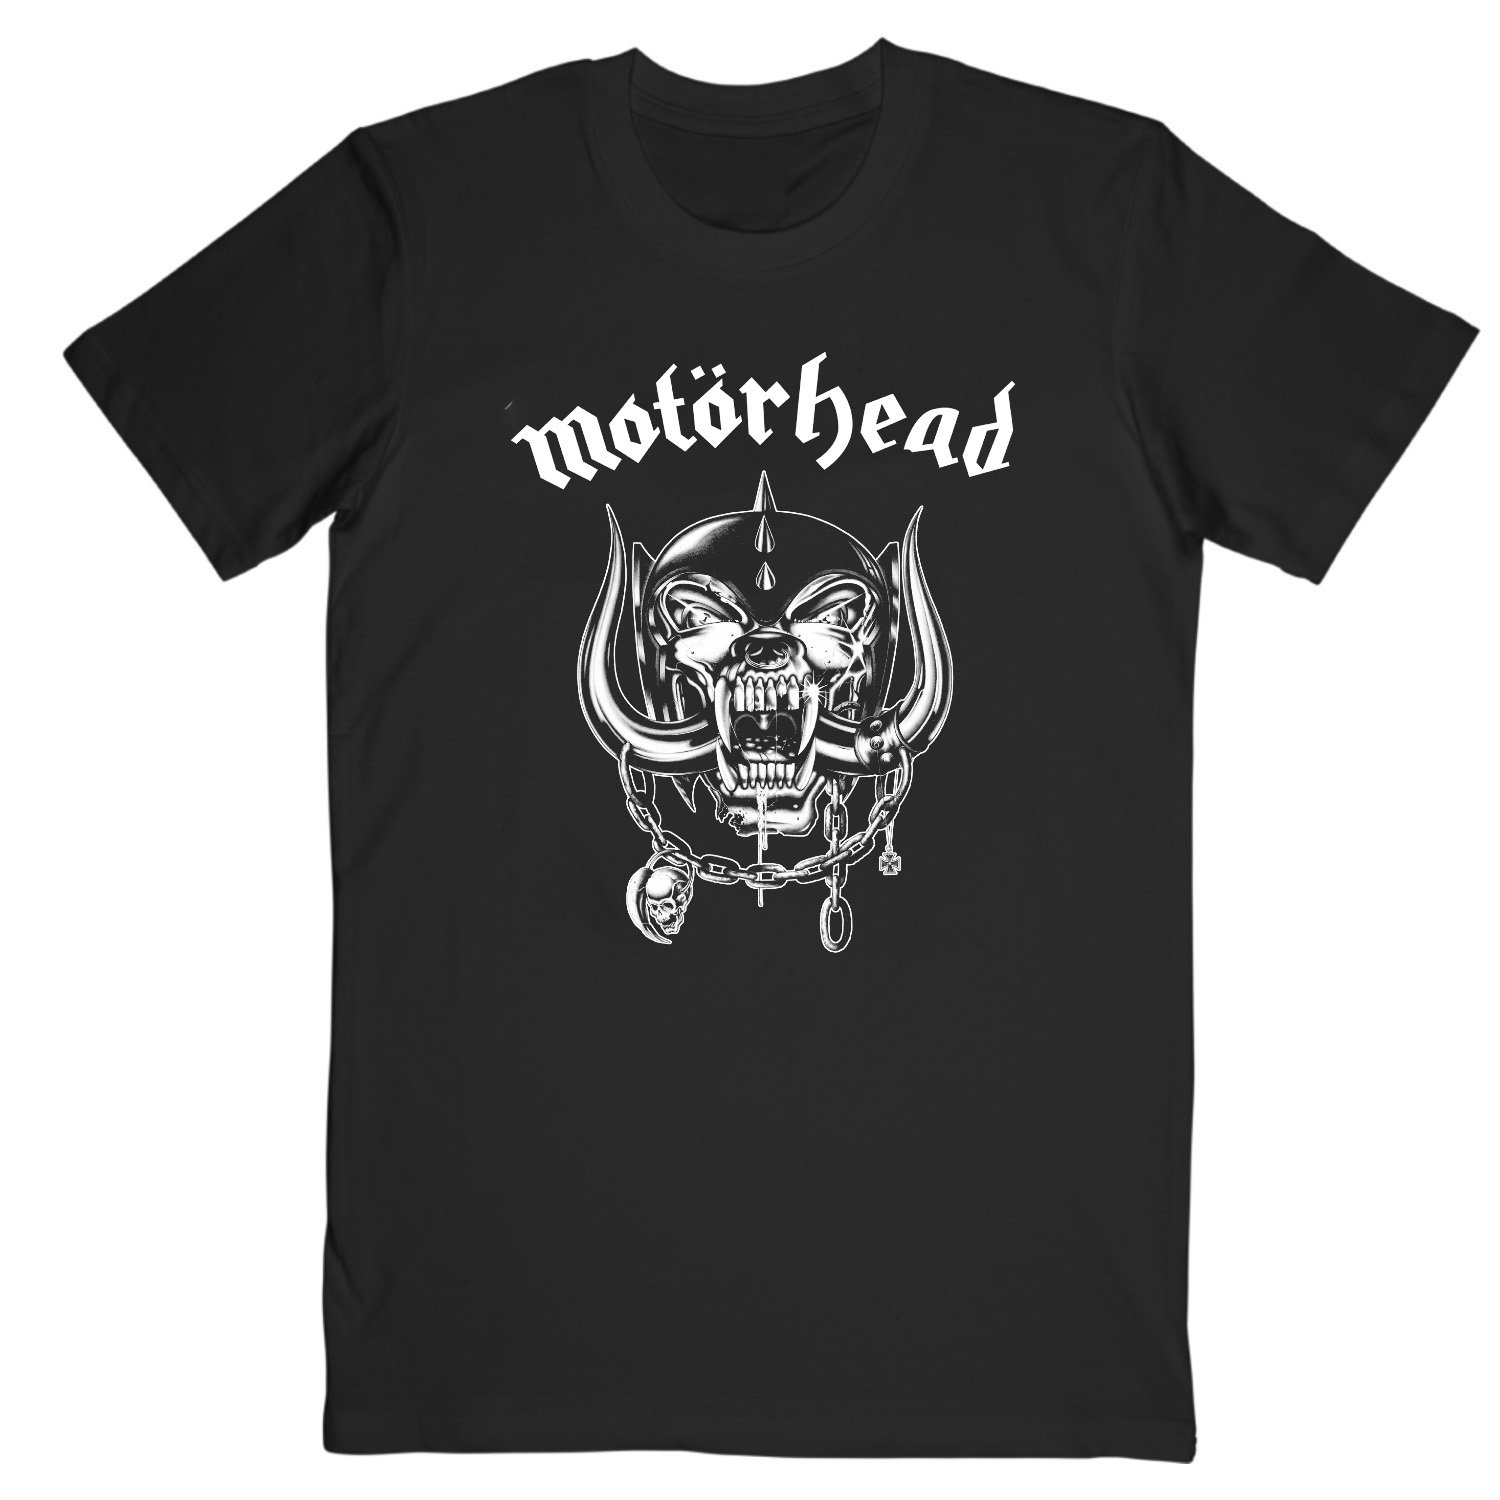 Motorhead - Make A Difference Tee